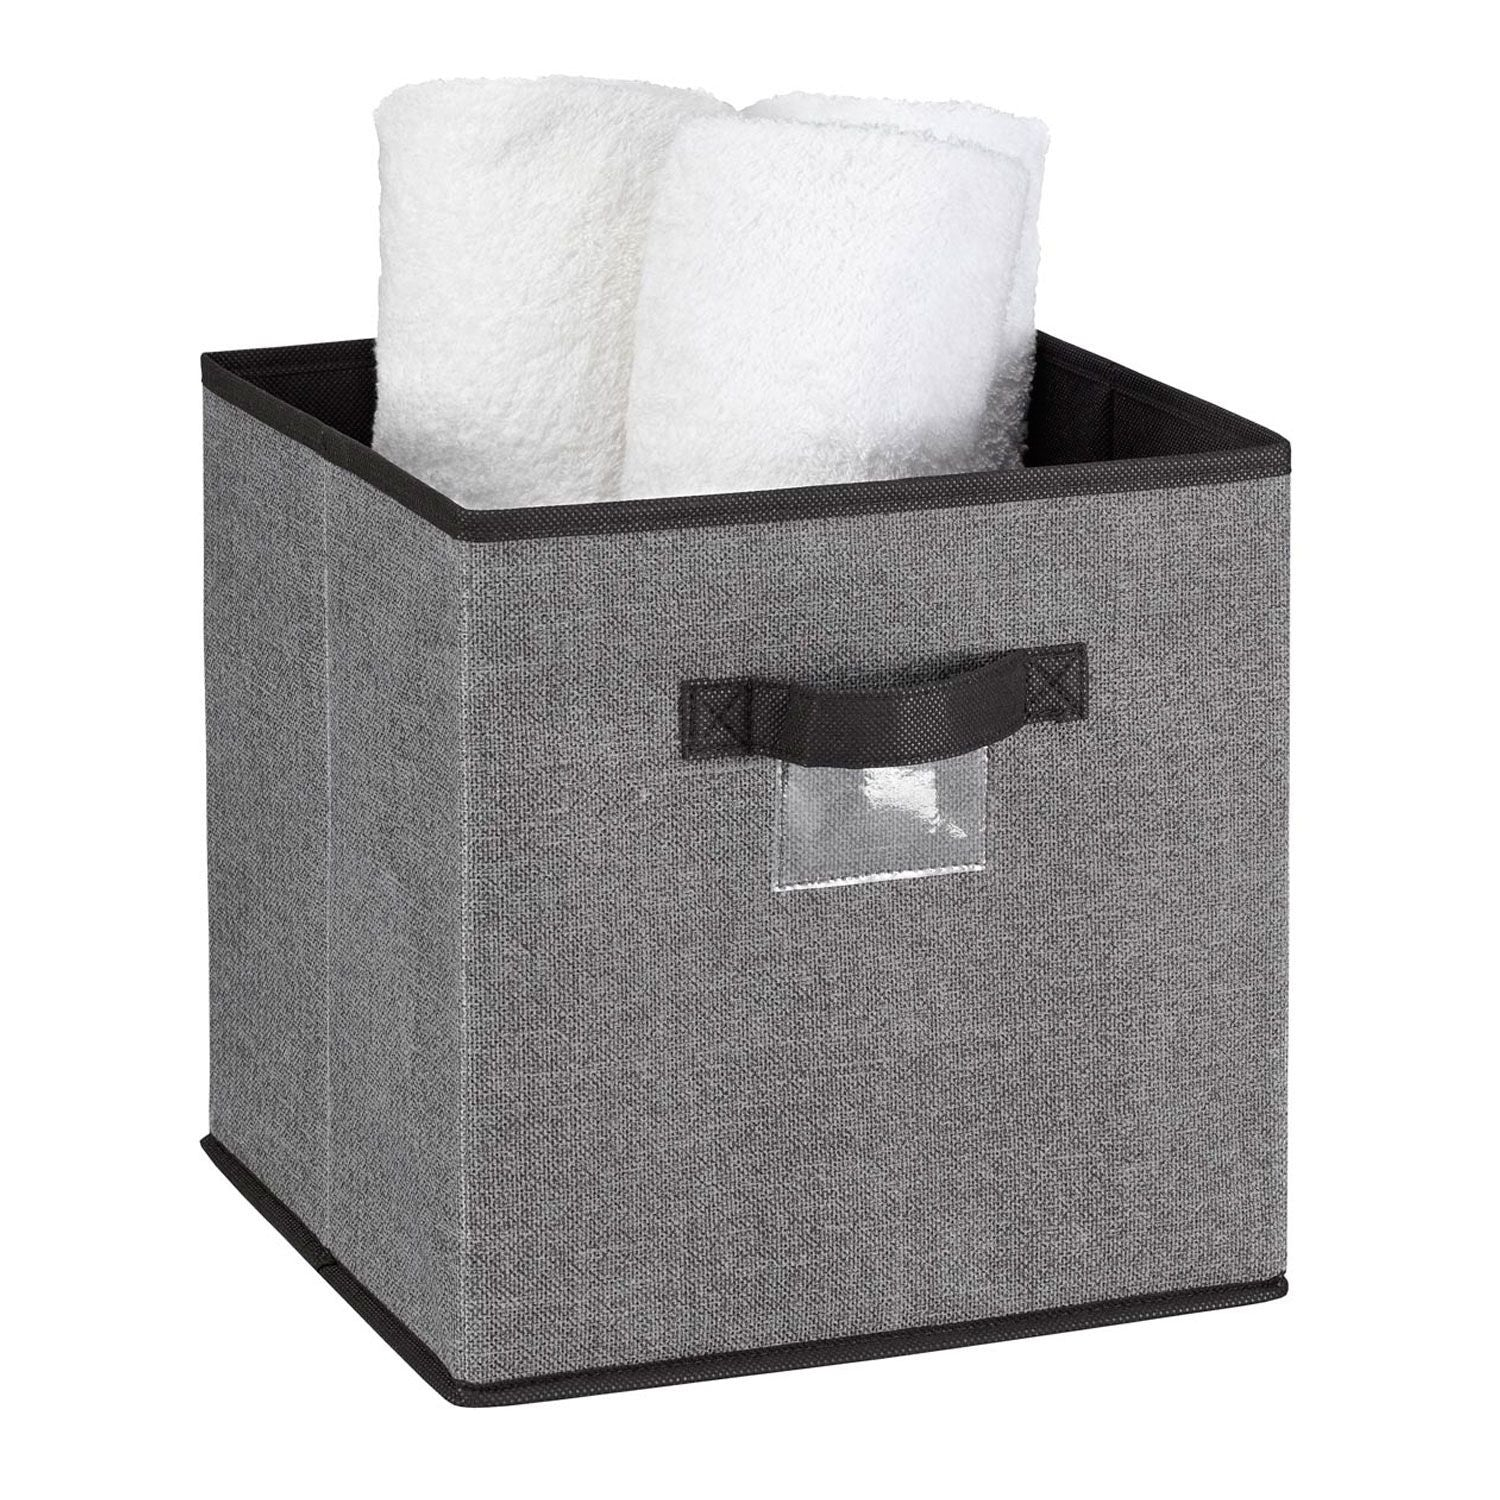 Storage Box - Cube - Beige